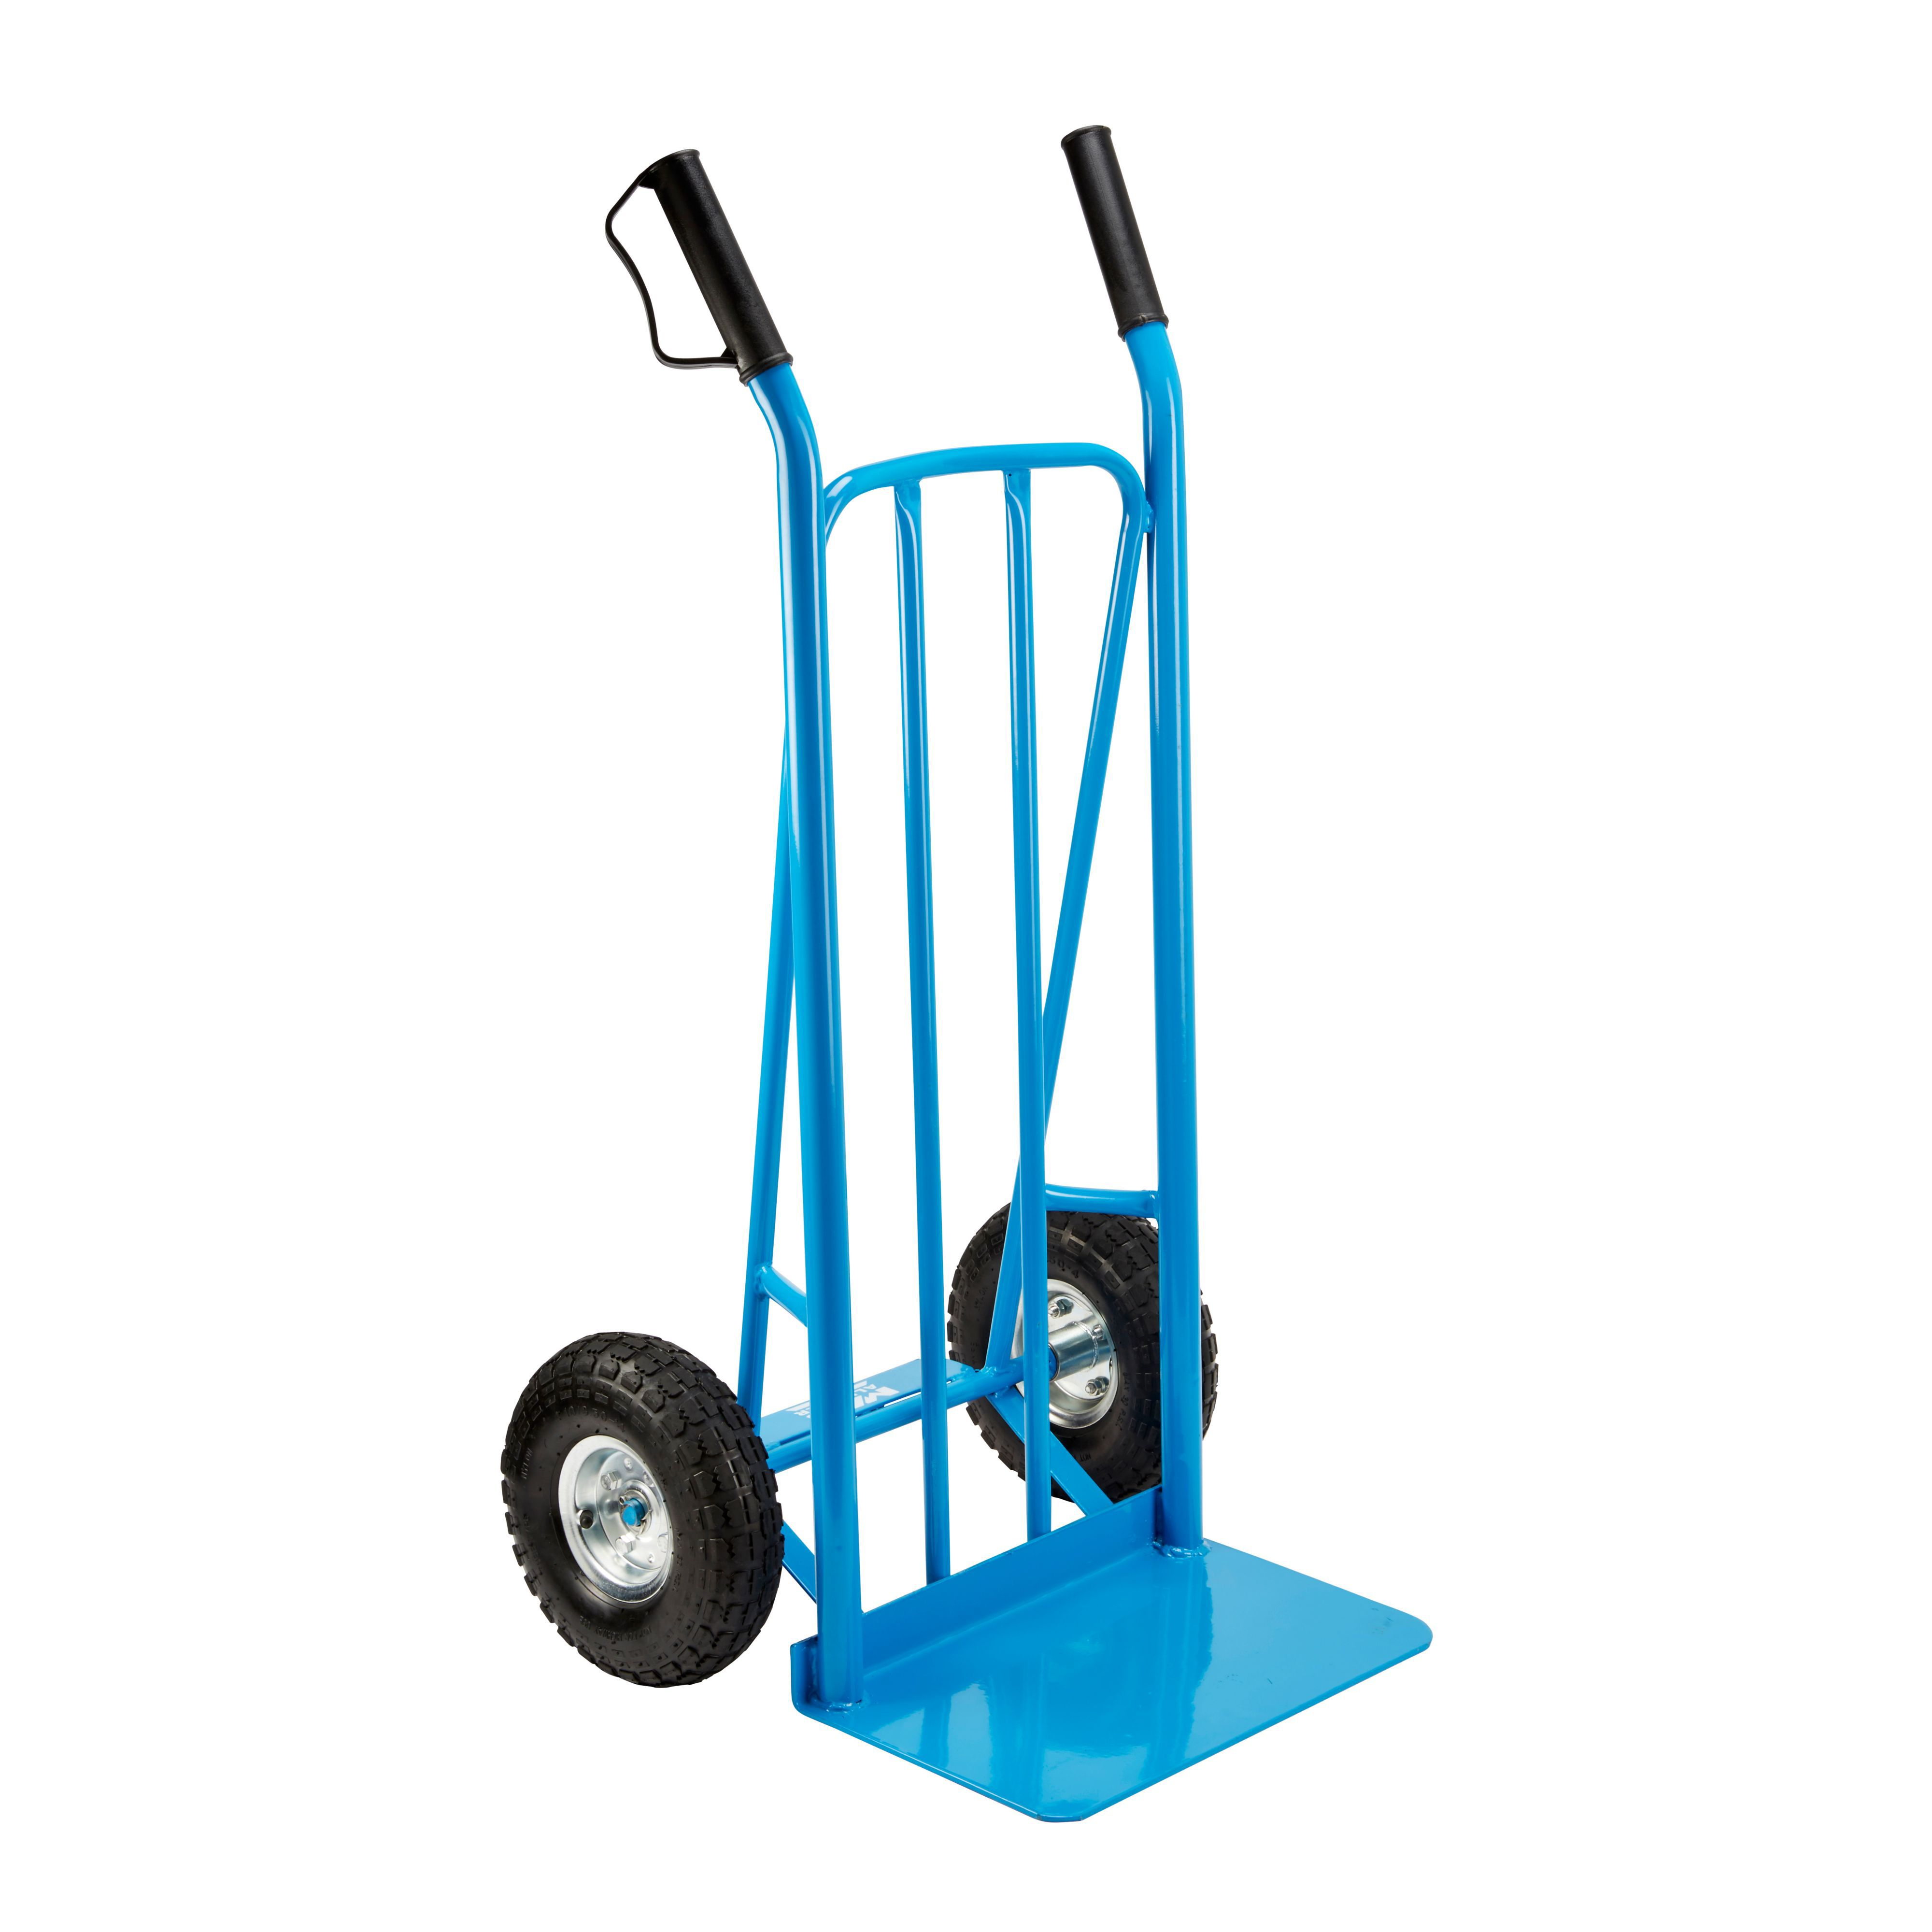 mac allister heavy duty hand truck max weight 300kg departments diy at bq - Heavy Duty Hand Truck